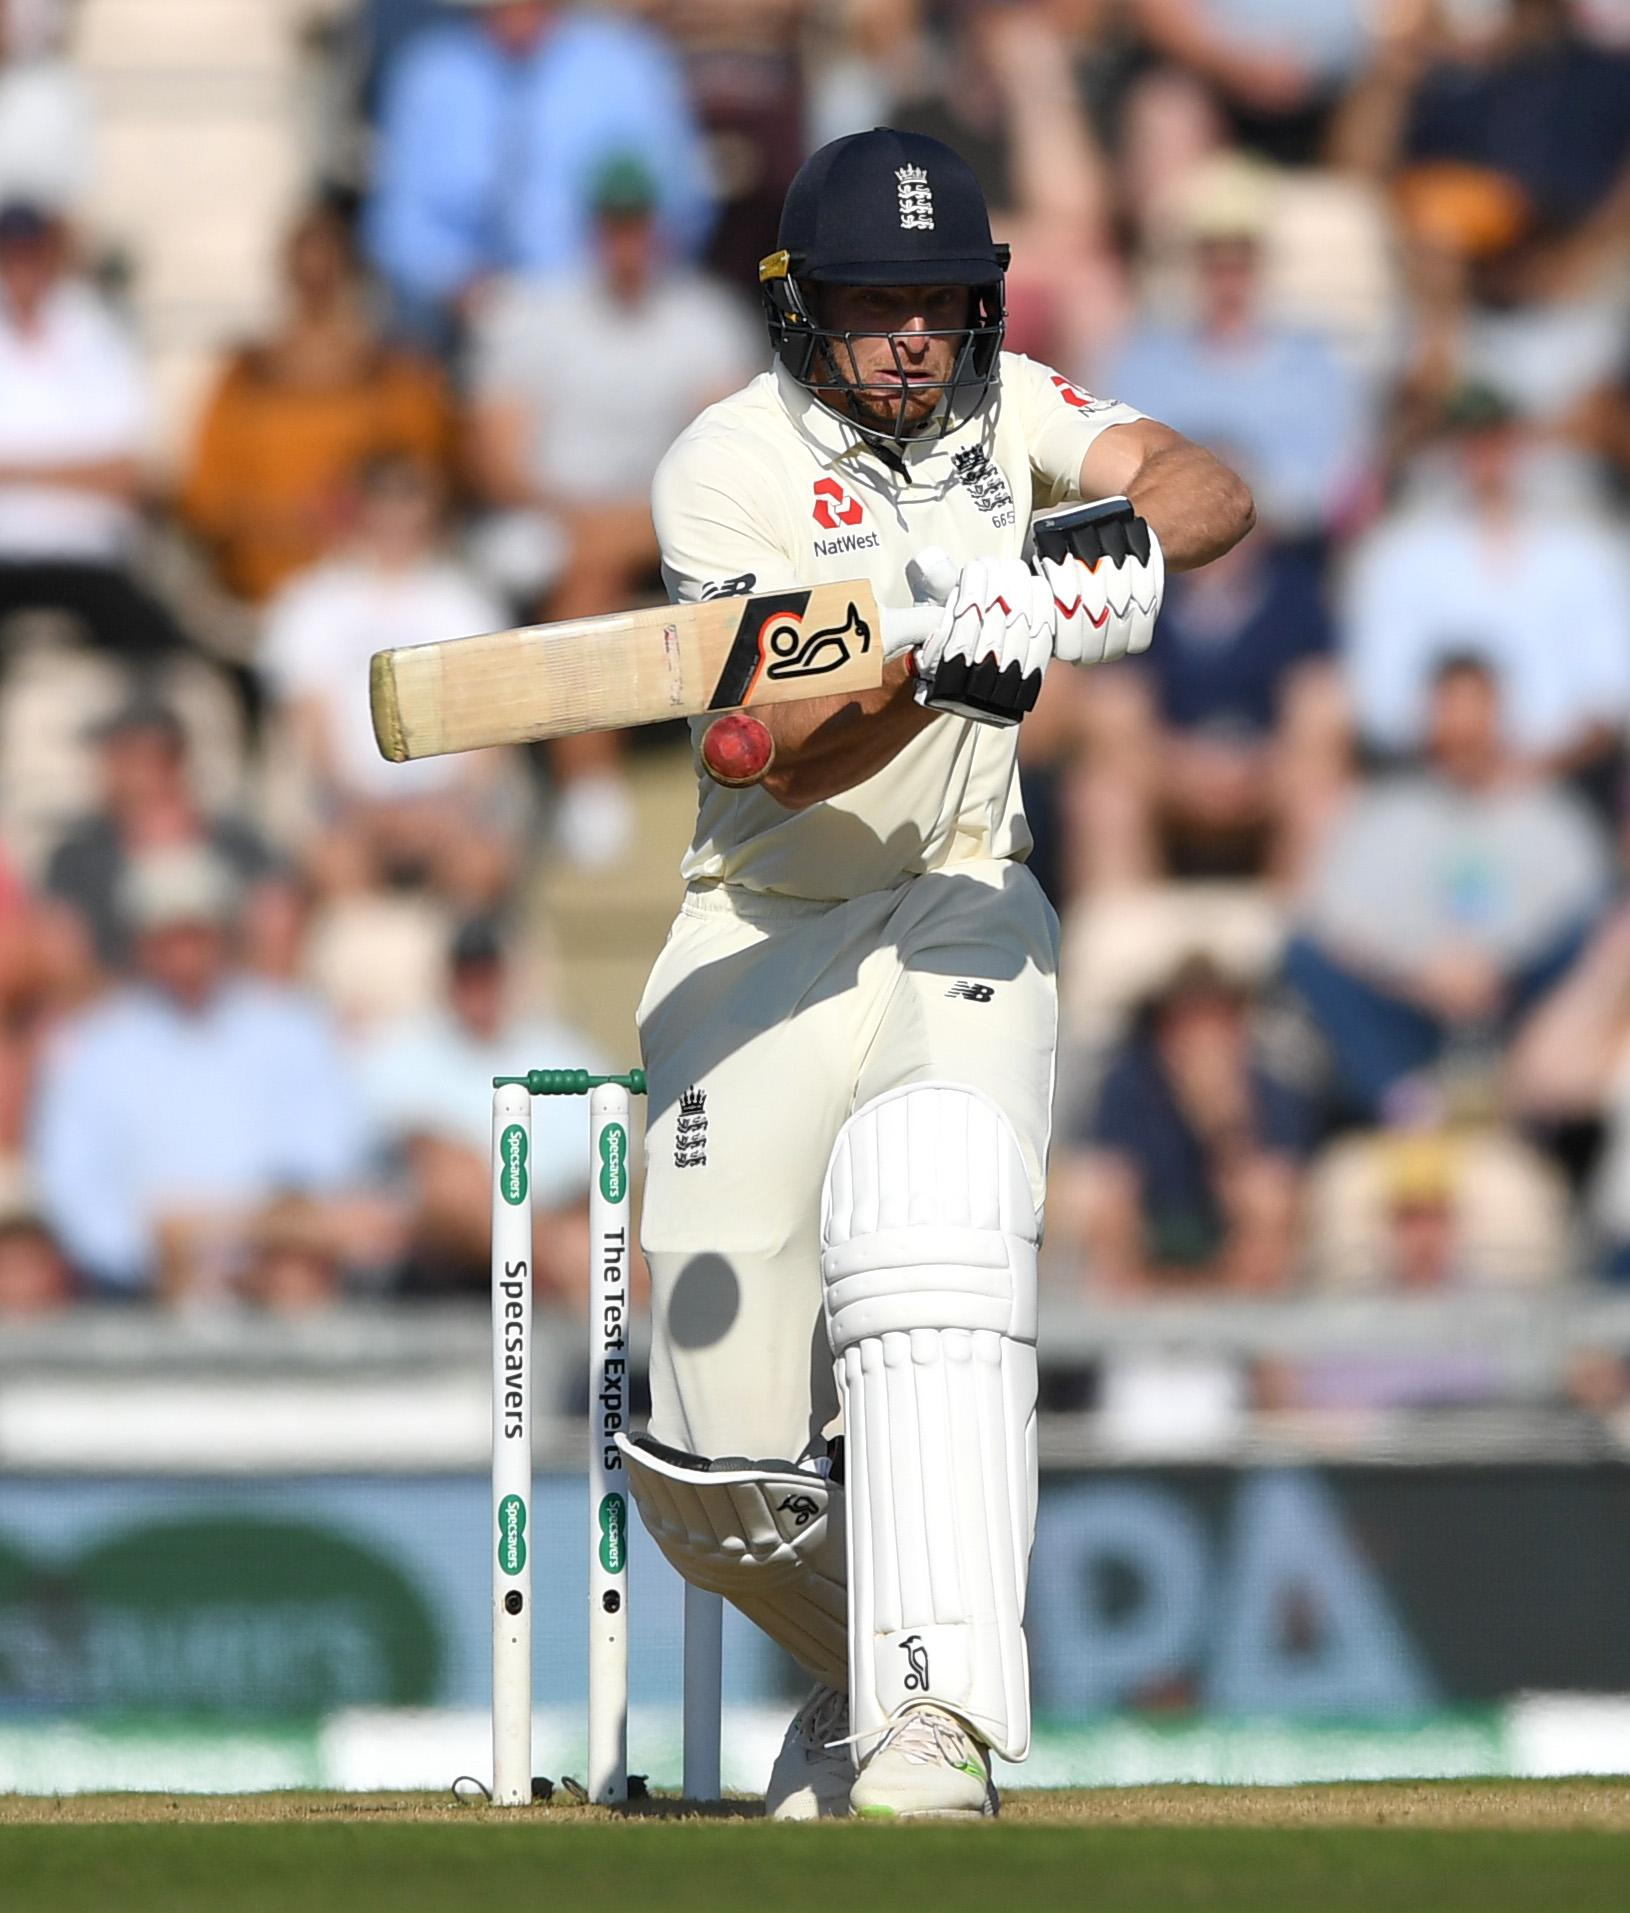 Jos Buttler played superbly for his 69 at the Ageas Bowl